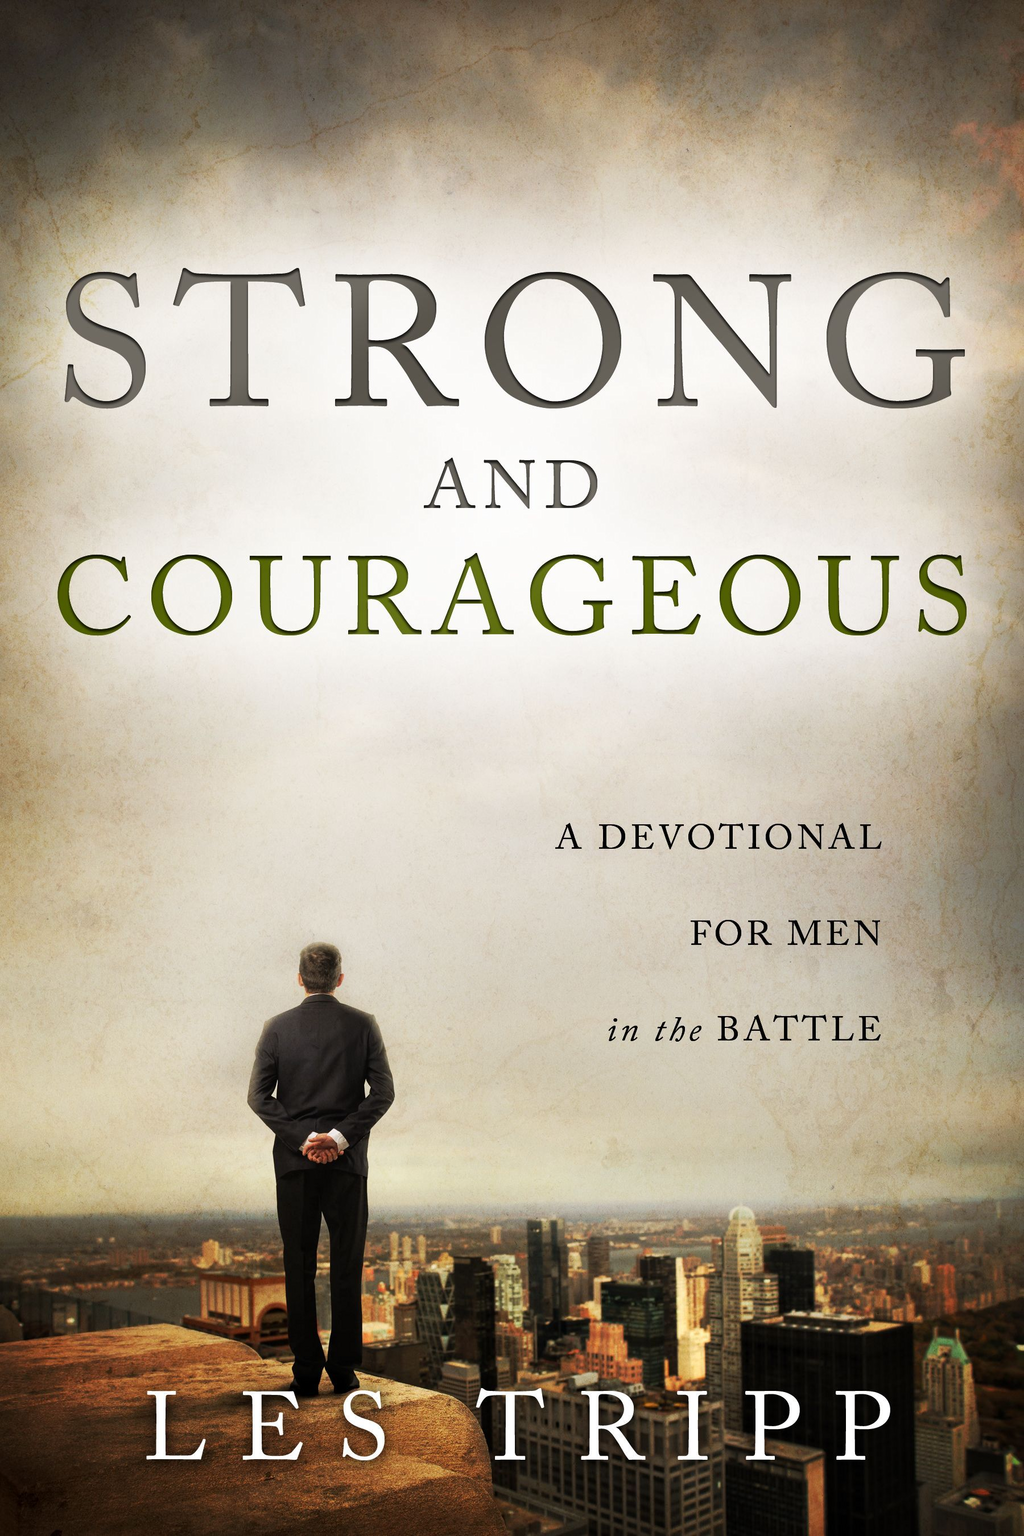 Strong and Courageous: A Devotional for Men in the Battle